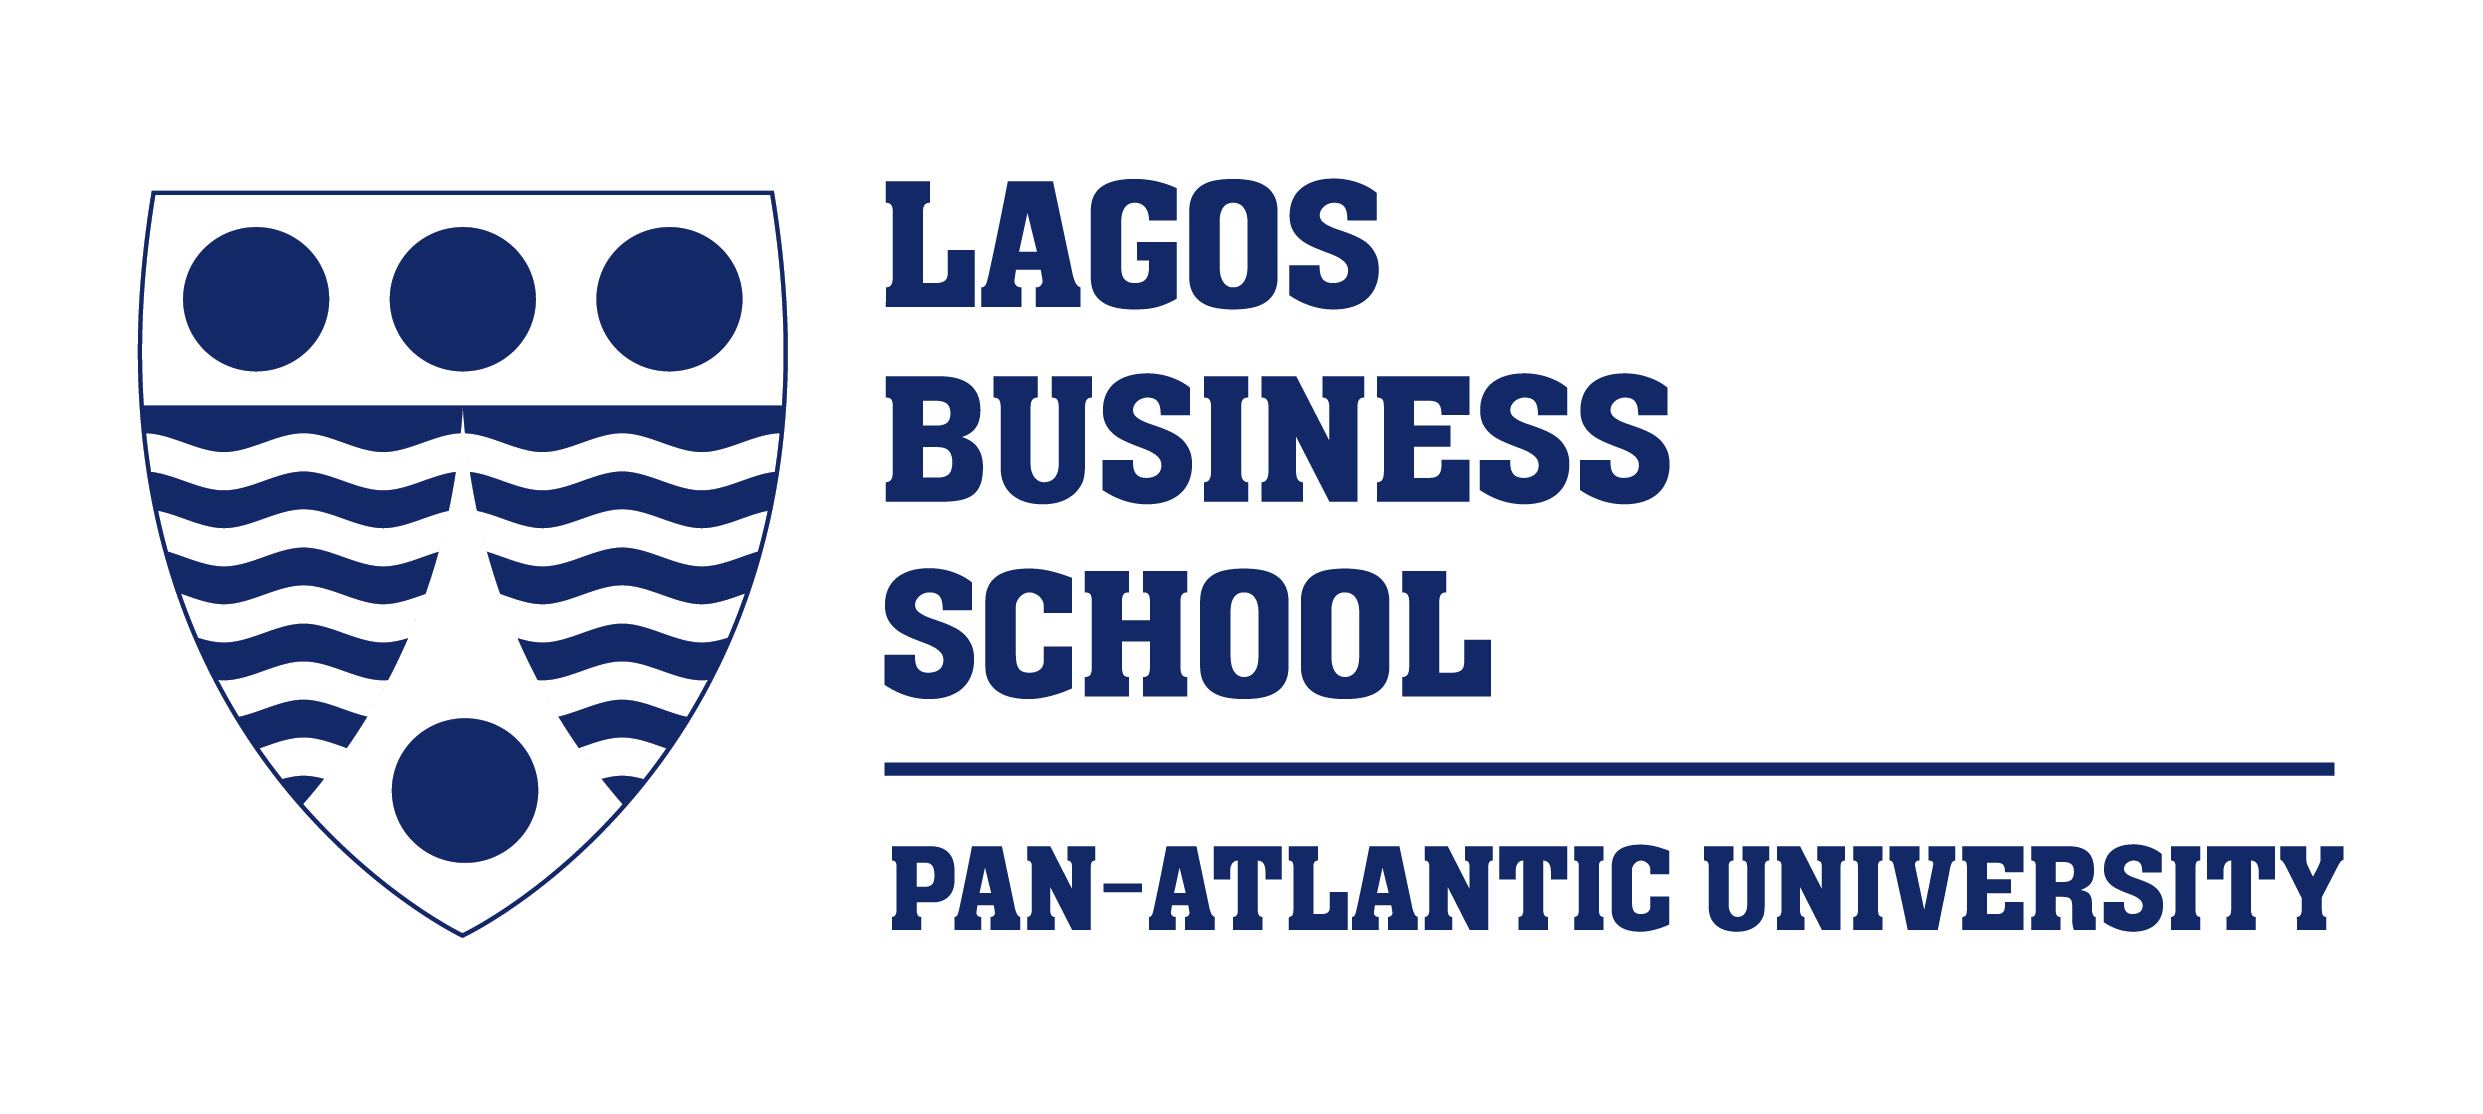 Lagos Business School, Pan-Atlantic University